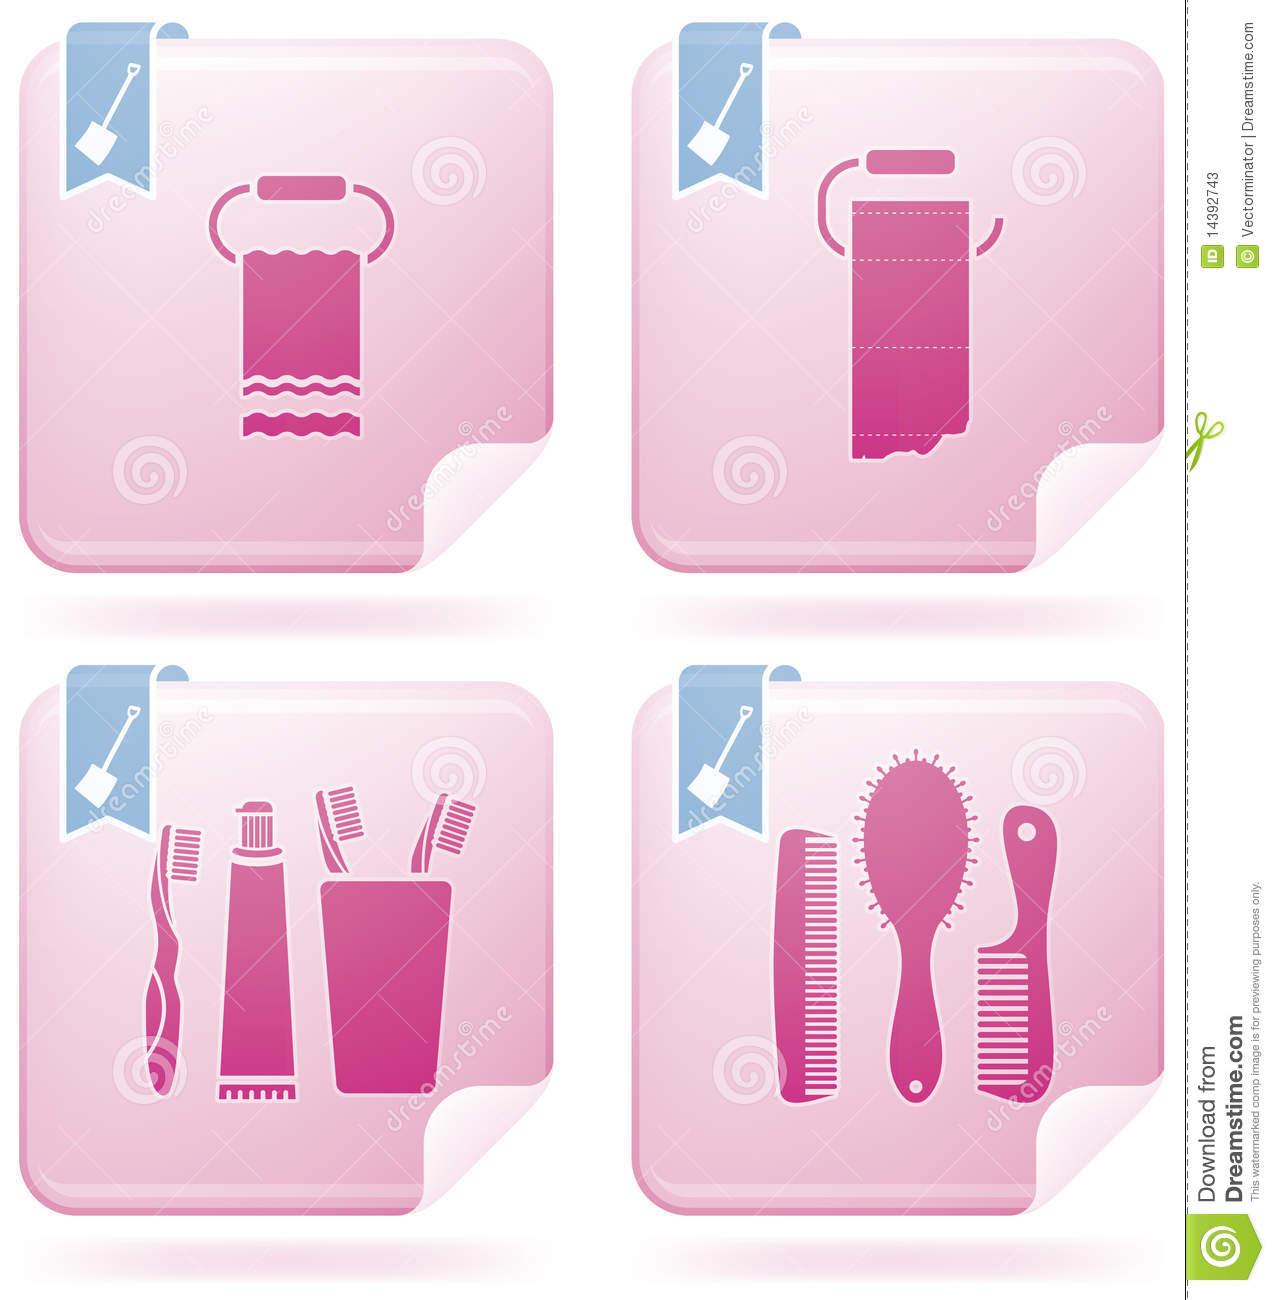 Bathroom utensils stock photos image 14392743 for Bathroom utensils